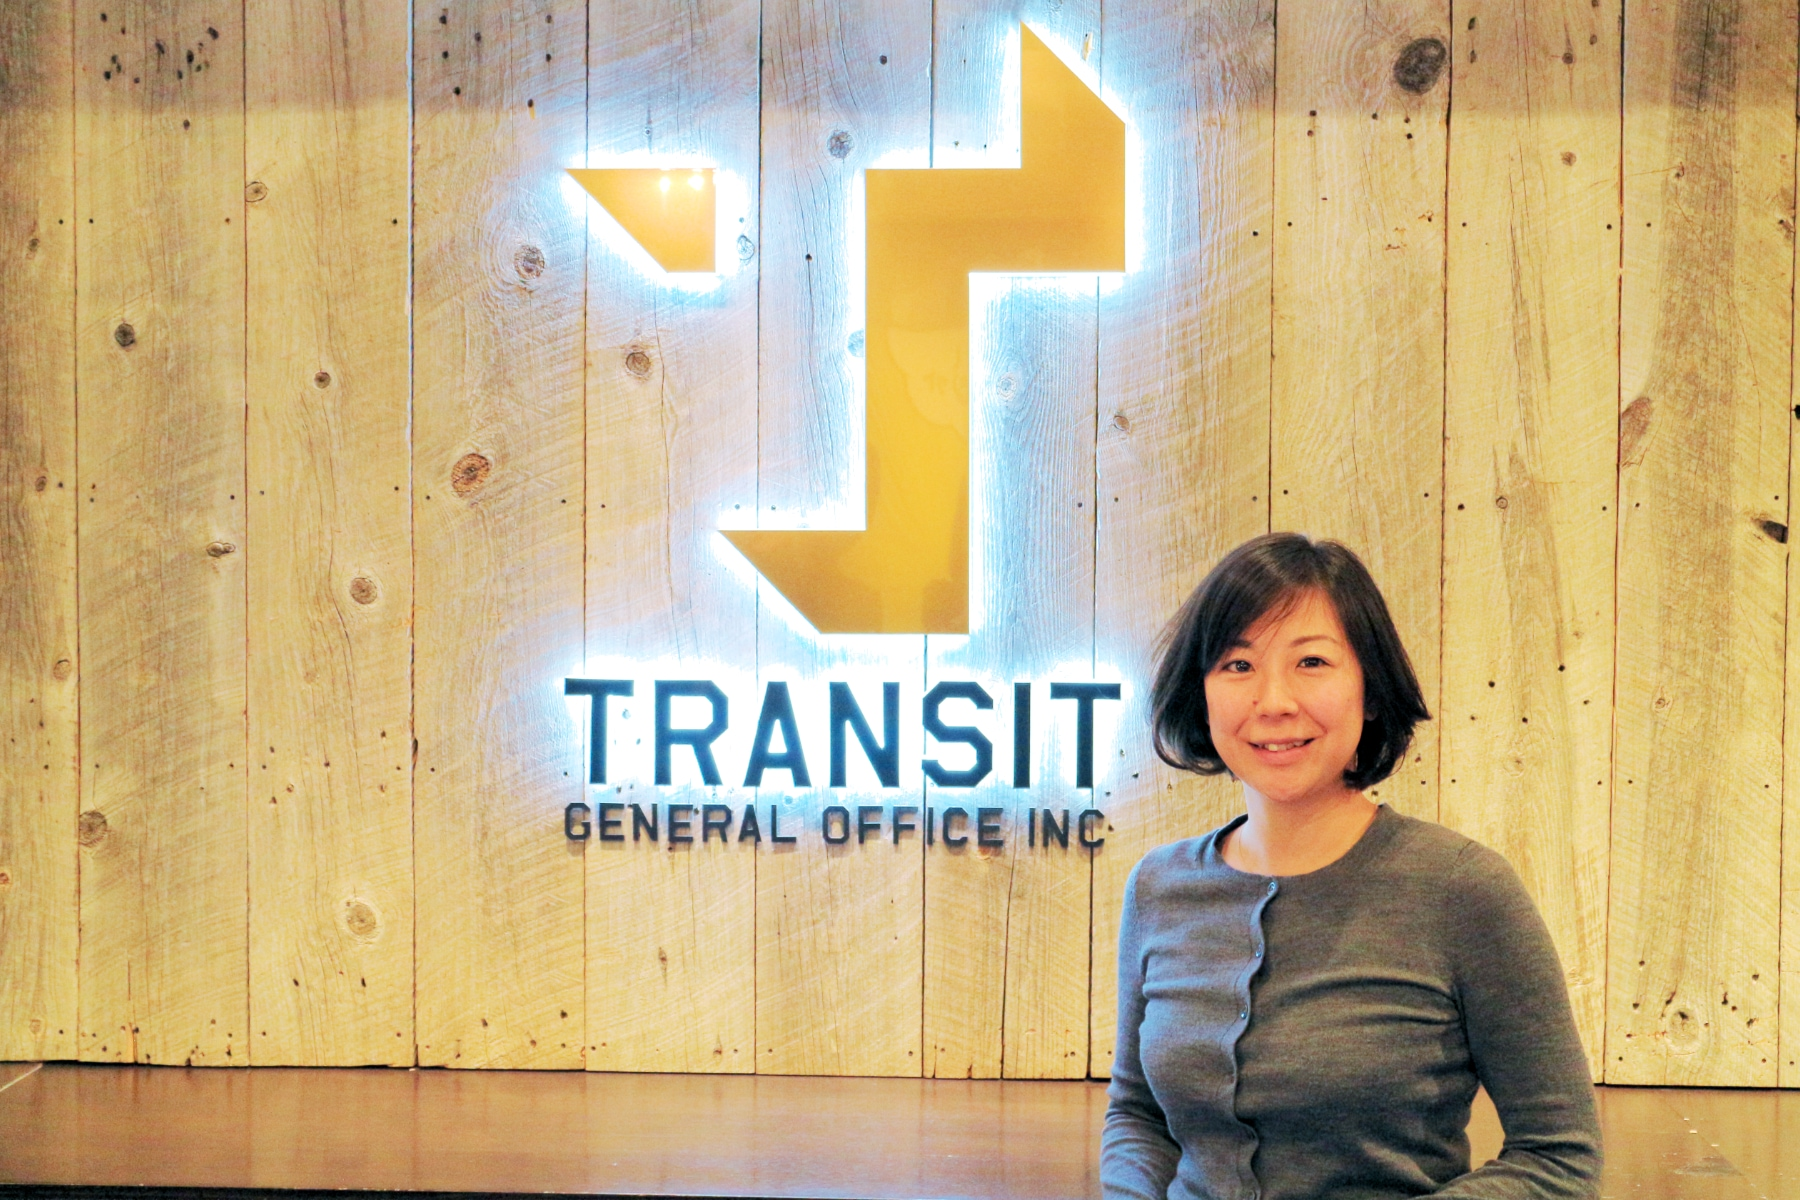 Yuka Fujisaki, Transit General Office